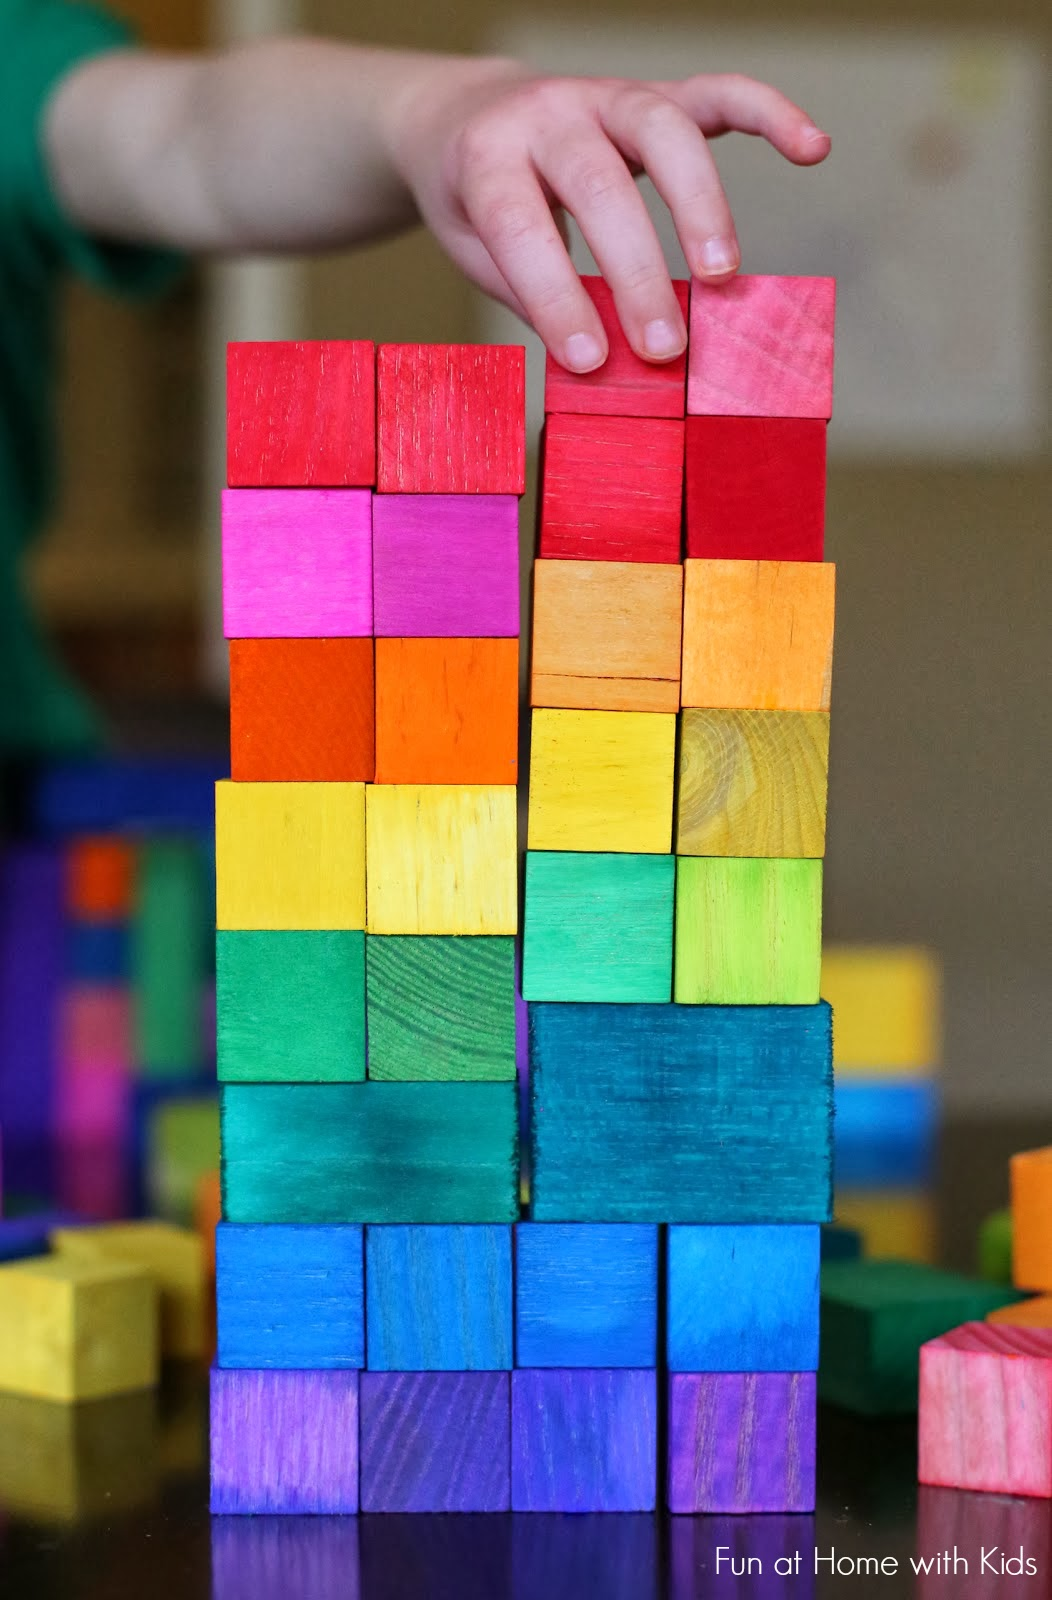 DIY Christmas Gifts for Kids - Homemade Christmas Presents for Children and Christmas Crafts for Kids   Toys, Dress Up Clothes, Dolls and Fun Games   Step by Step tutorials and instructions for cool gifts to make for boys and girls   DIY Dyed Rainbow Grimm Style Wooden Blocks